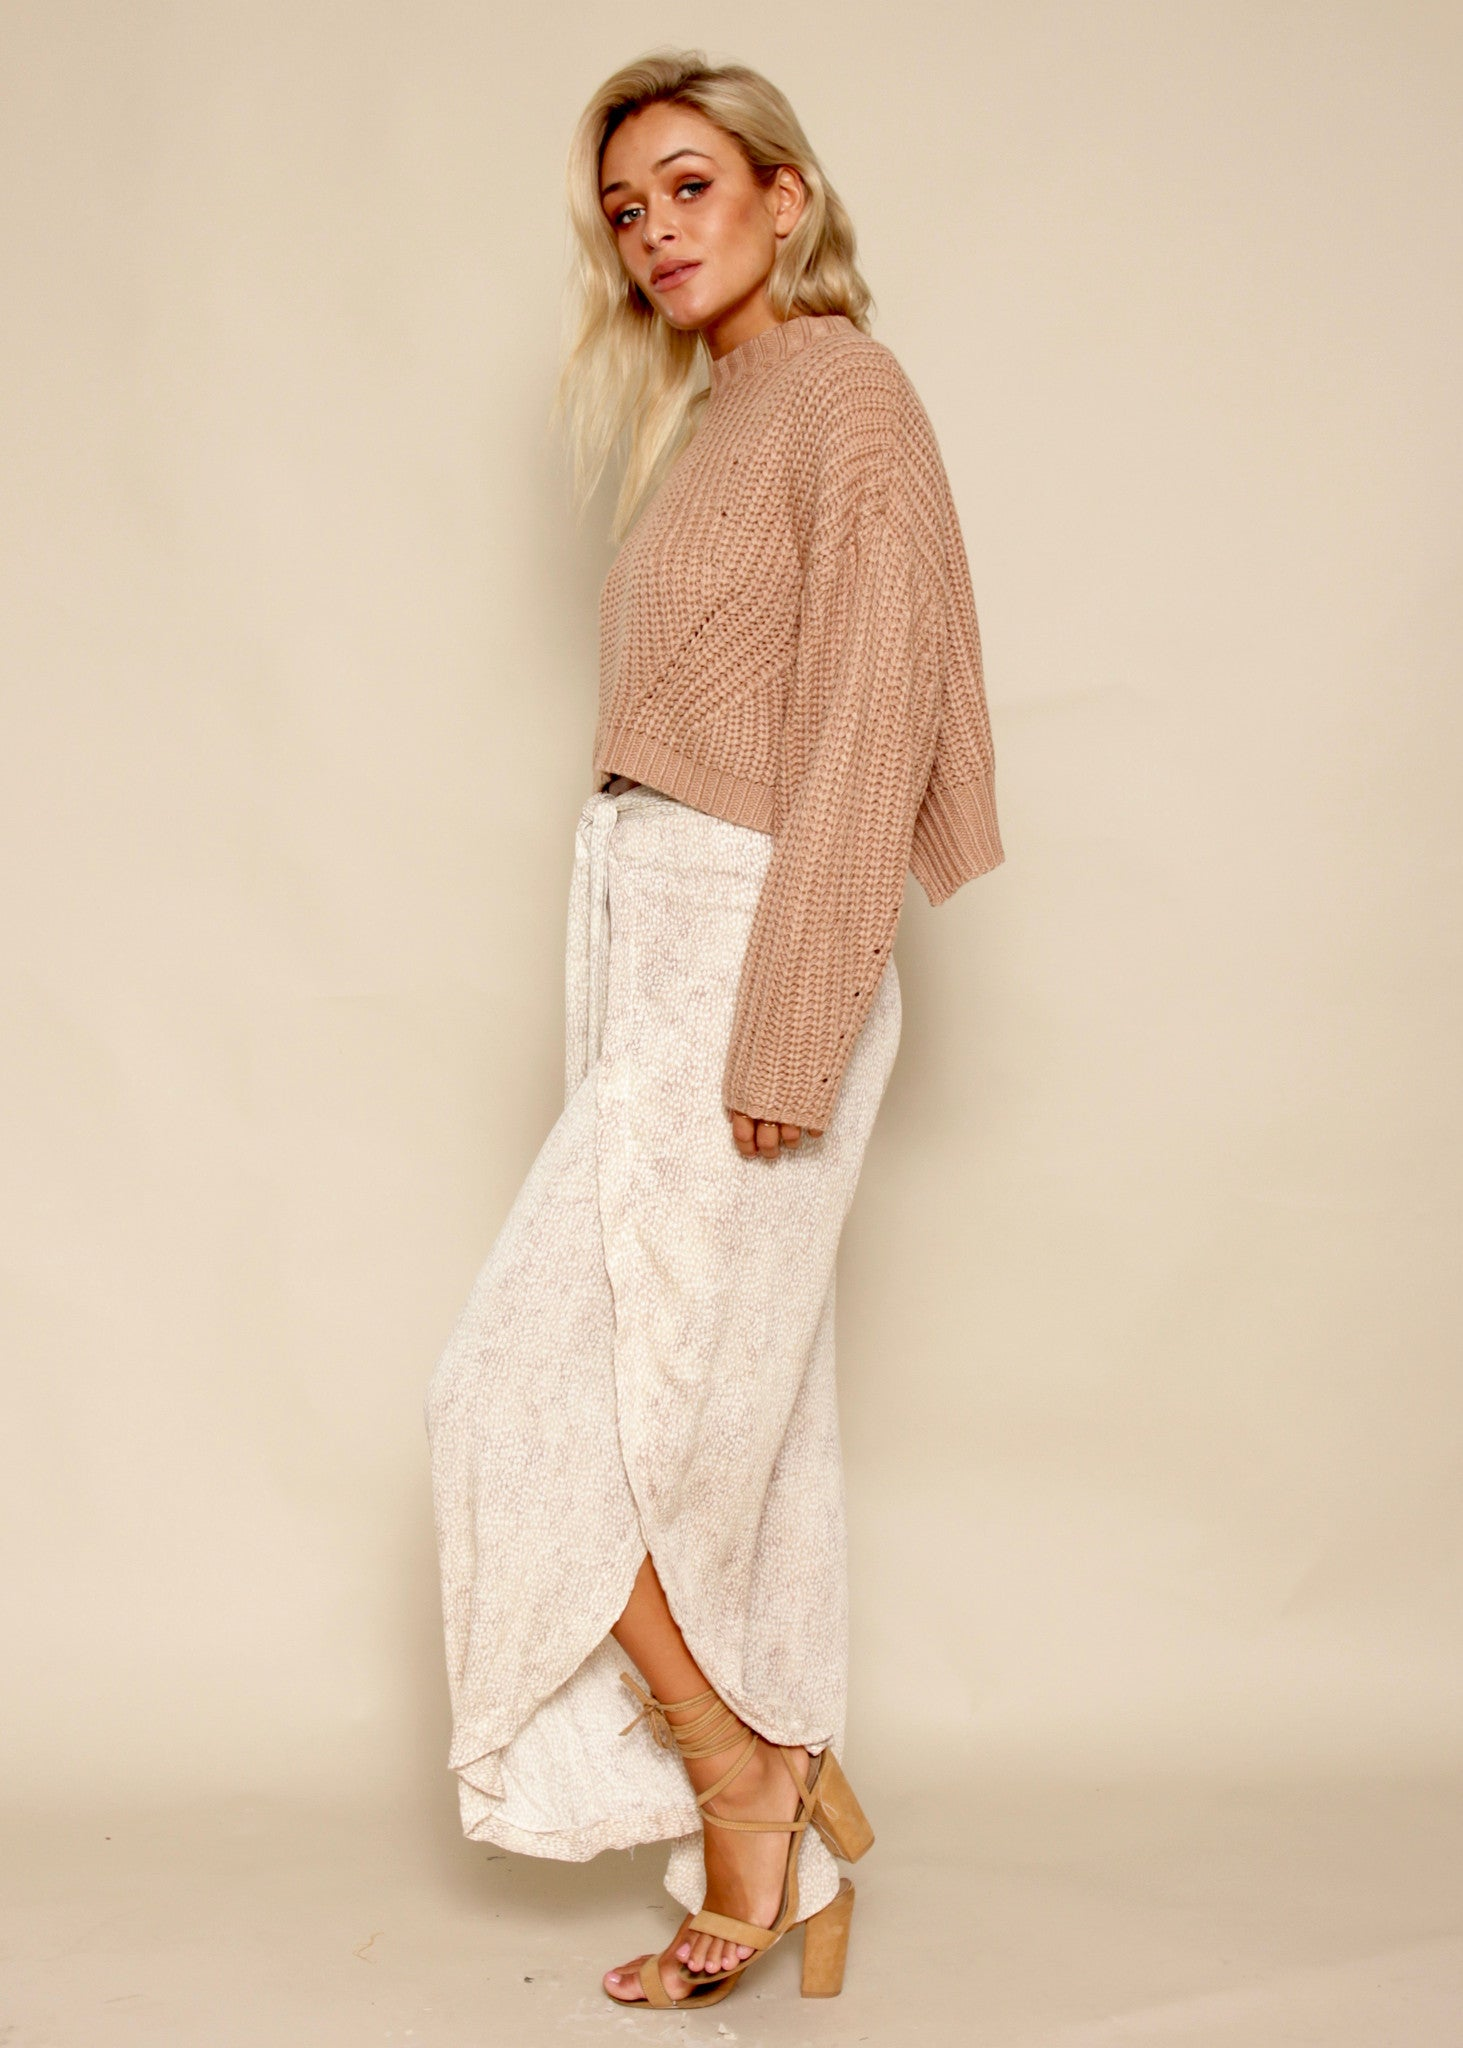 Crossed Paths Crop Sweater - Blush